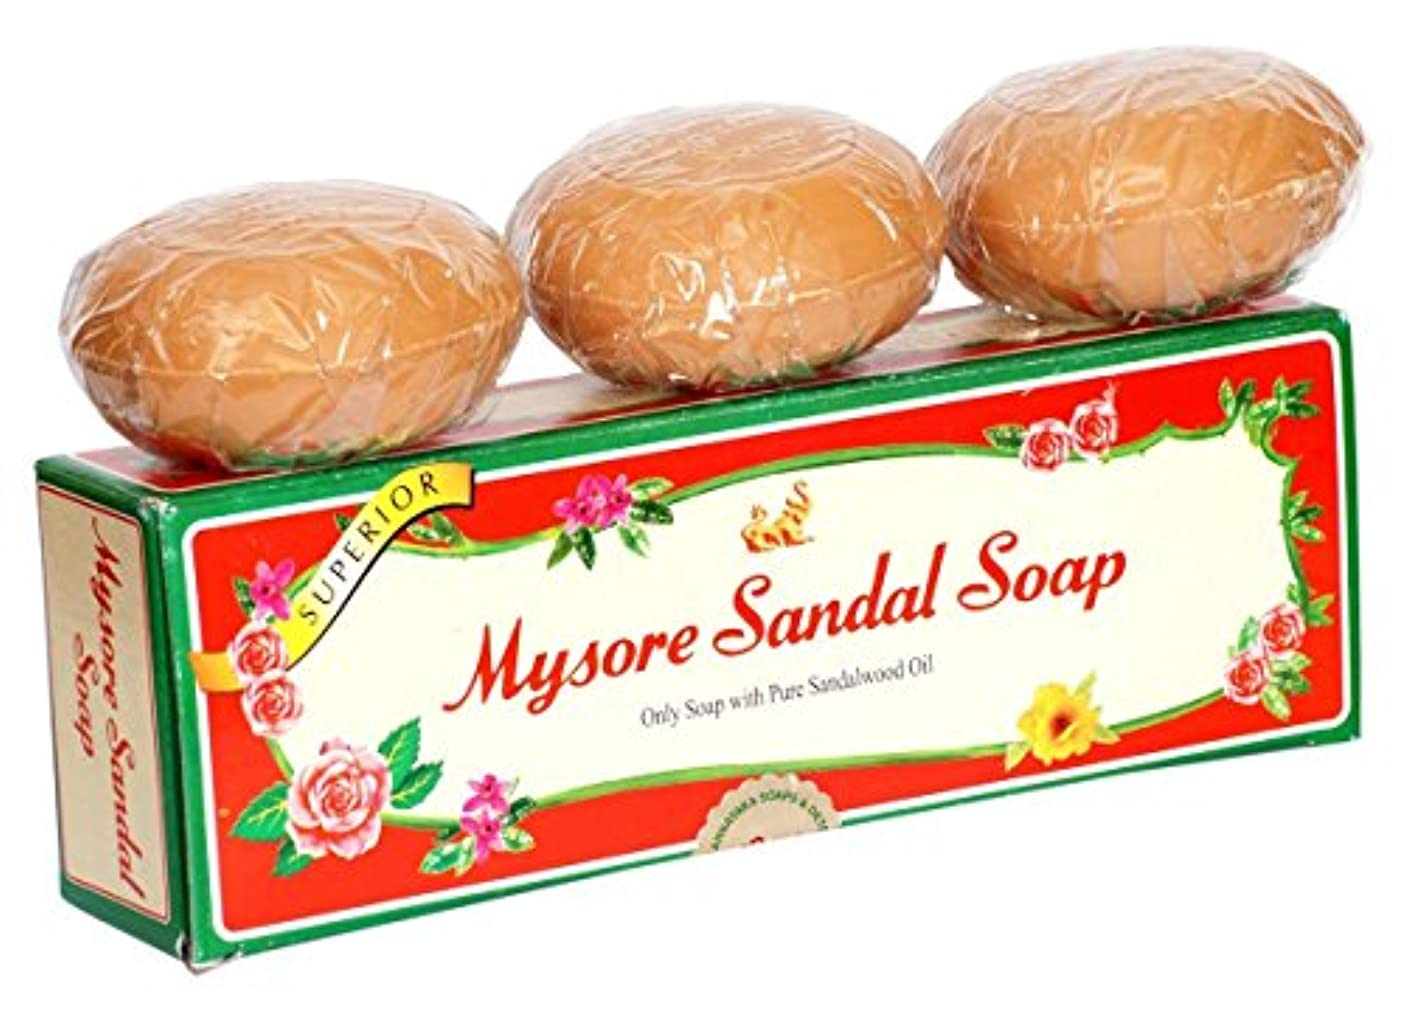 値下げハンドブック前兆Mysore Pure Natural Sandalwood Oil Ayurvedic Soap - 3 x 150g bars in 1 gift pack